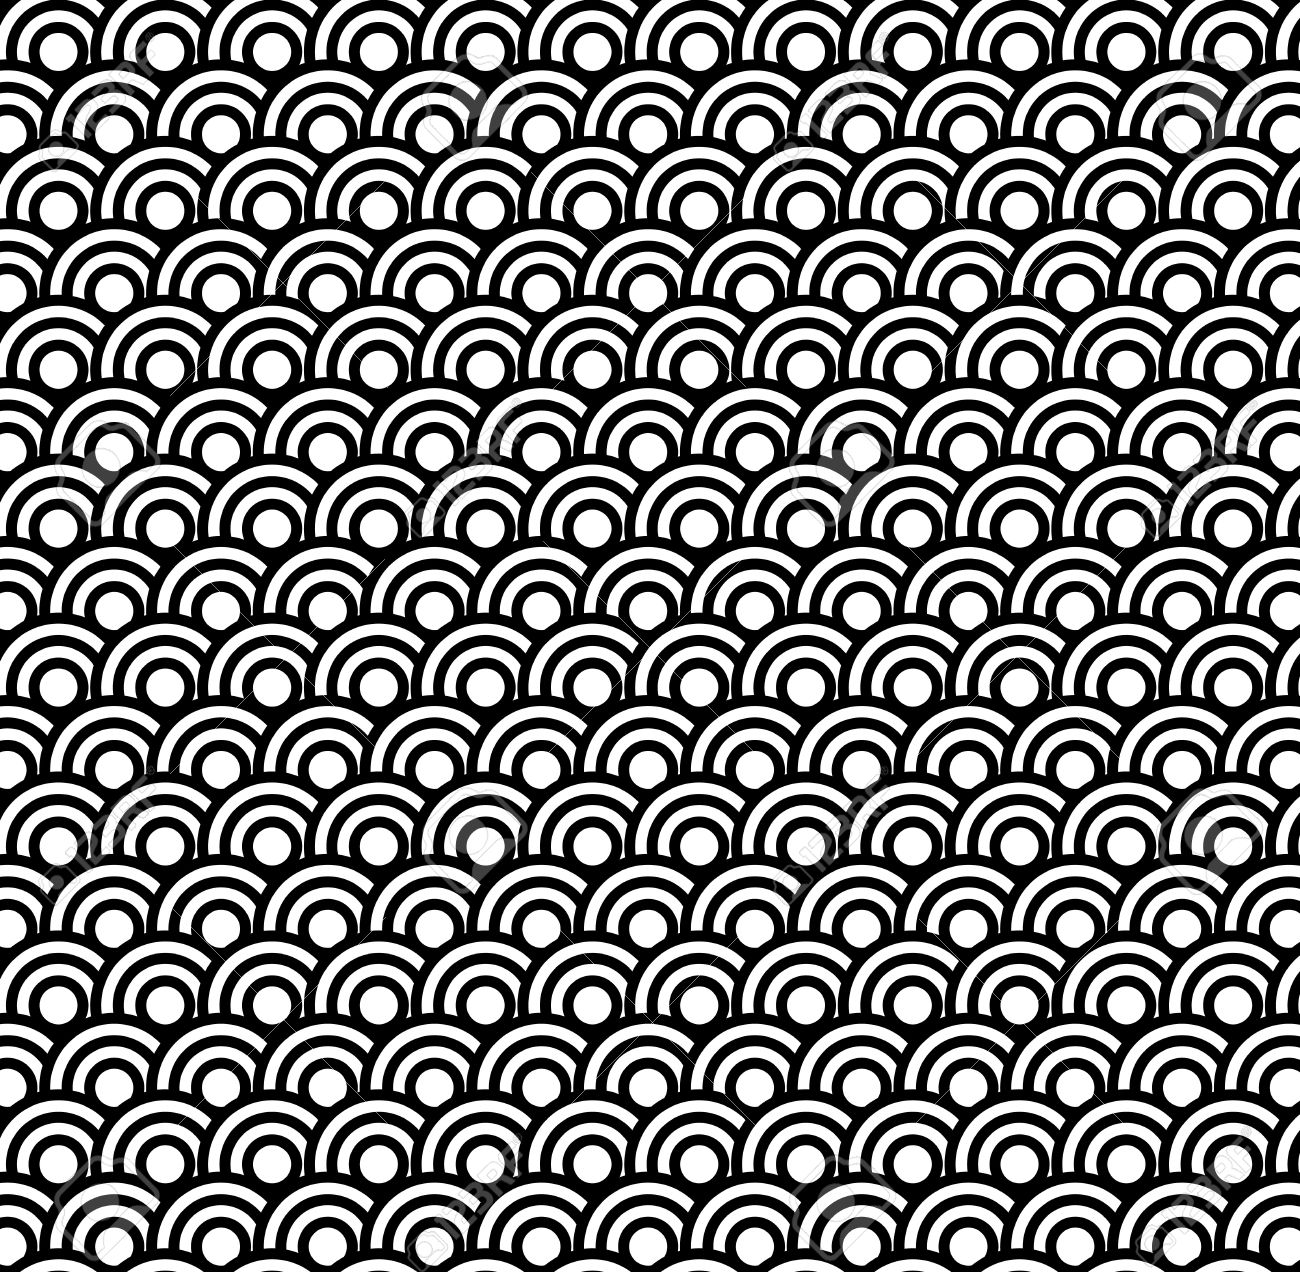 Retro black and white seamless circle pattern background Stock Vector - 11193942